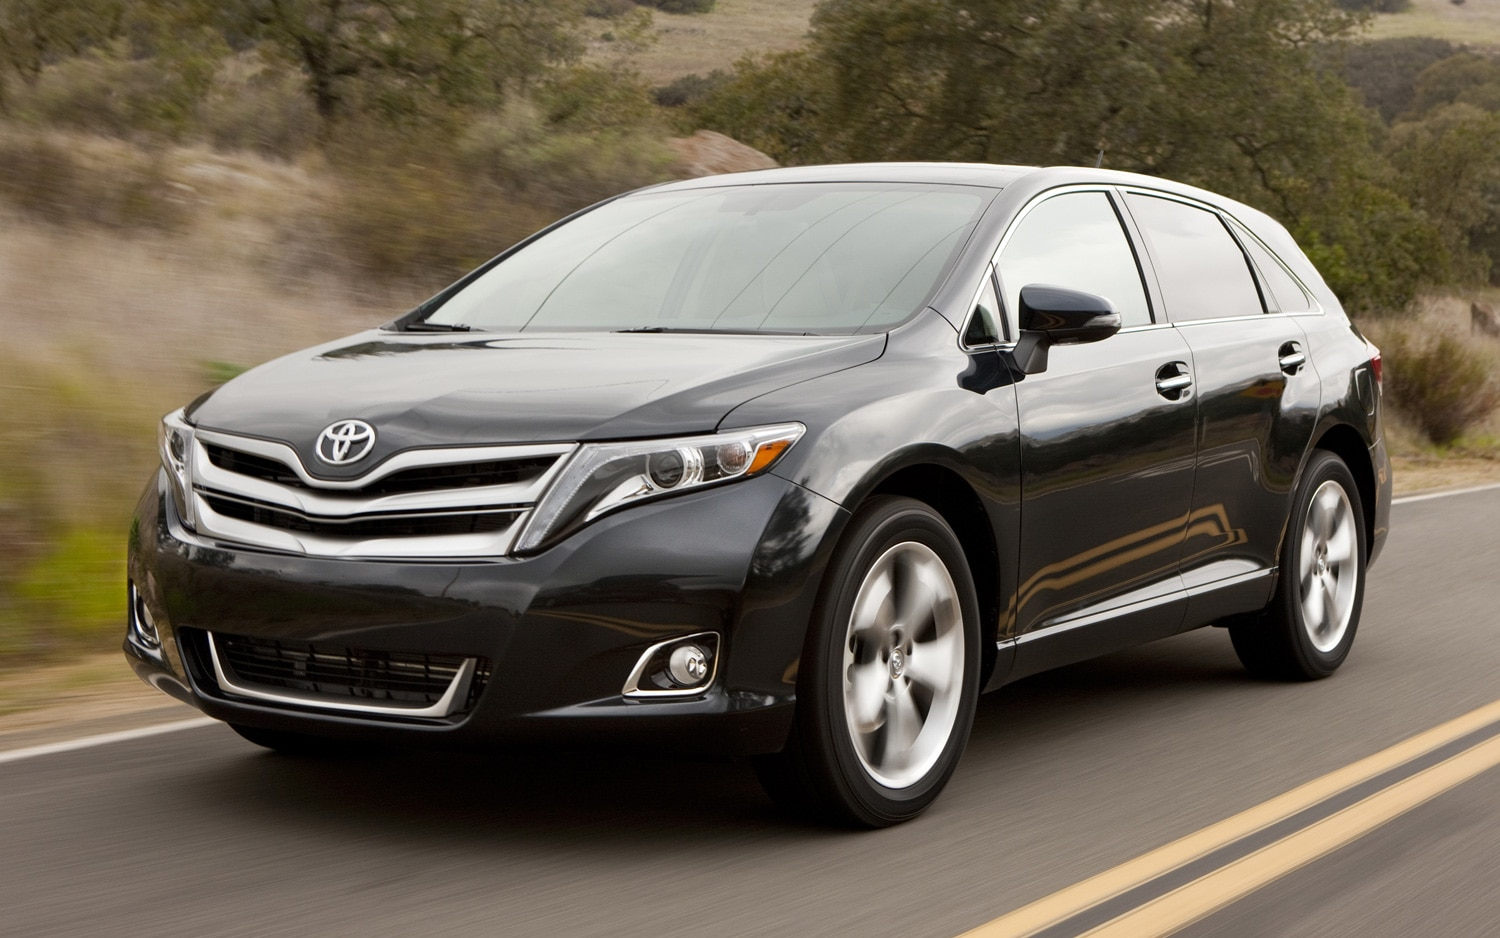 Toyota Venza Discontinued for 2015